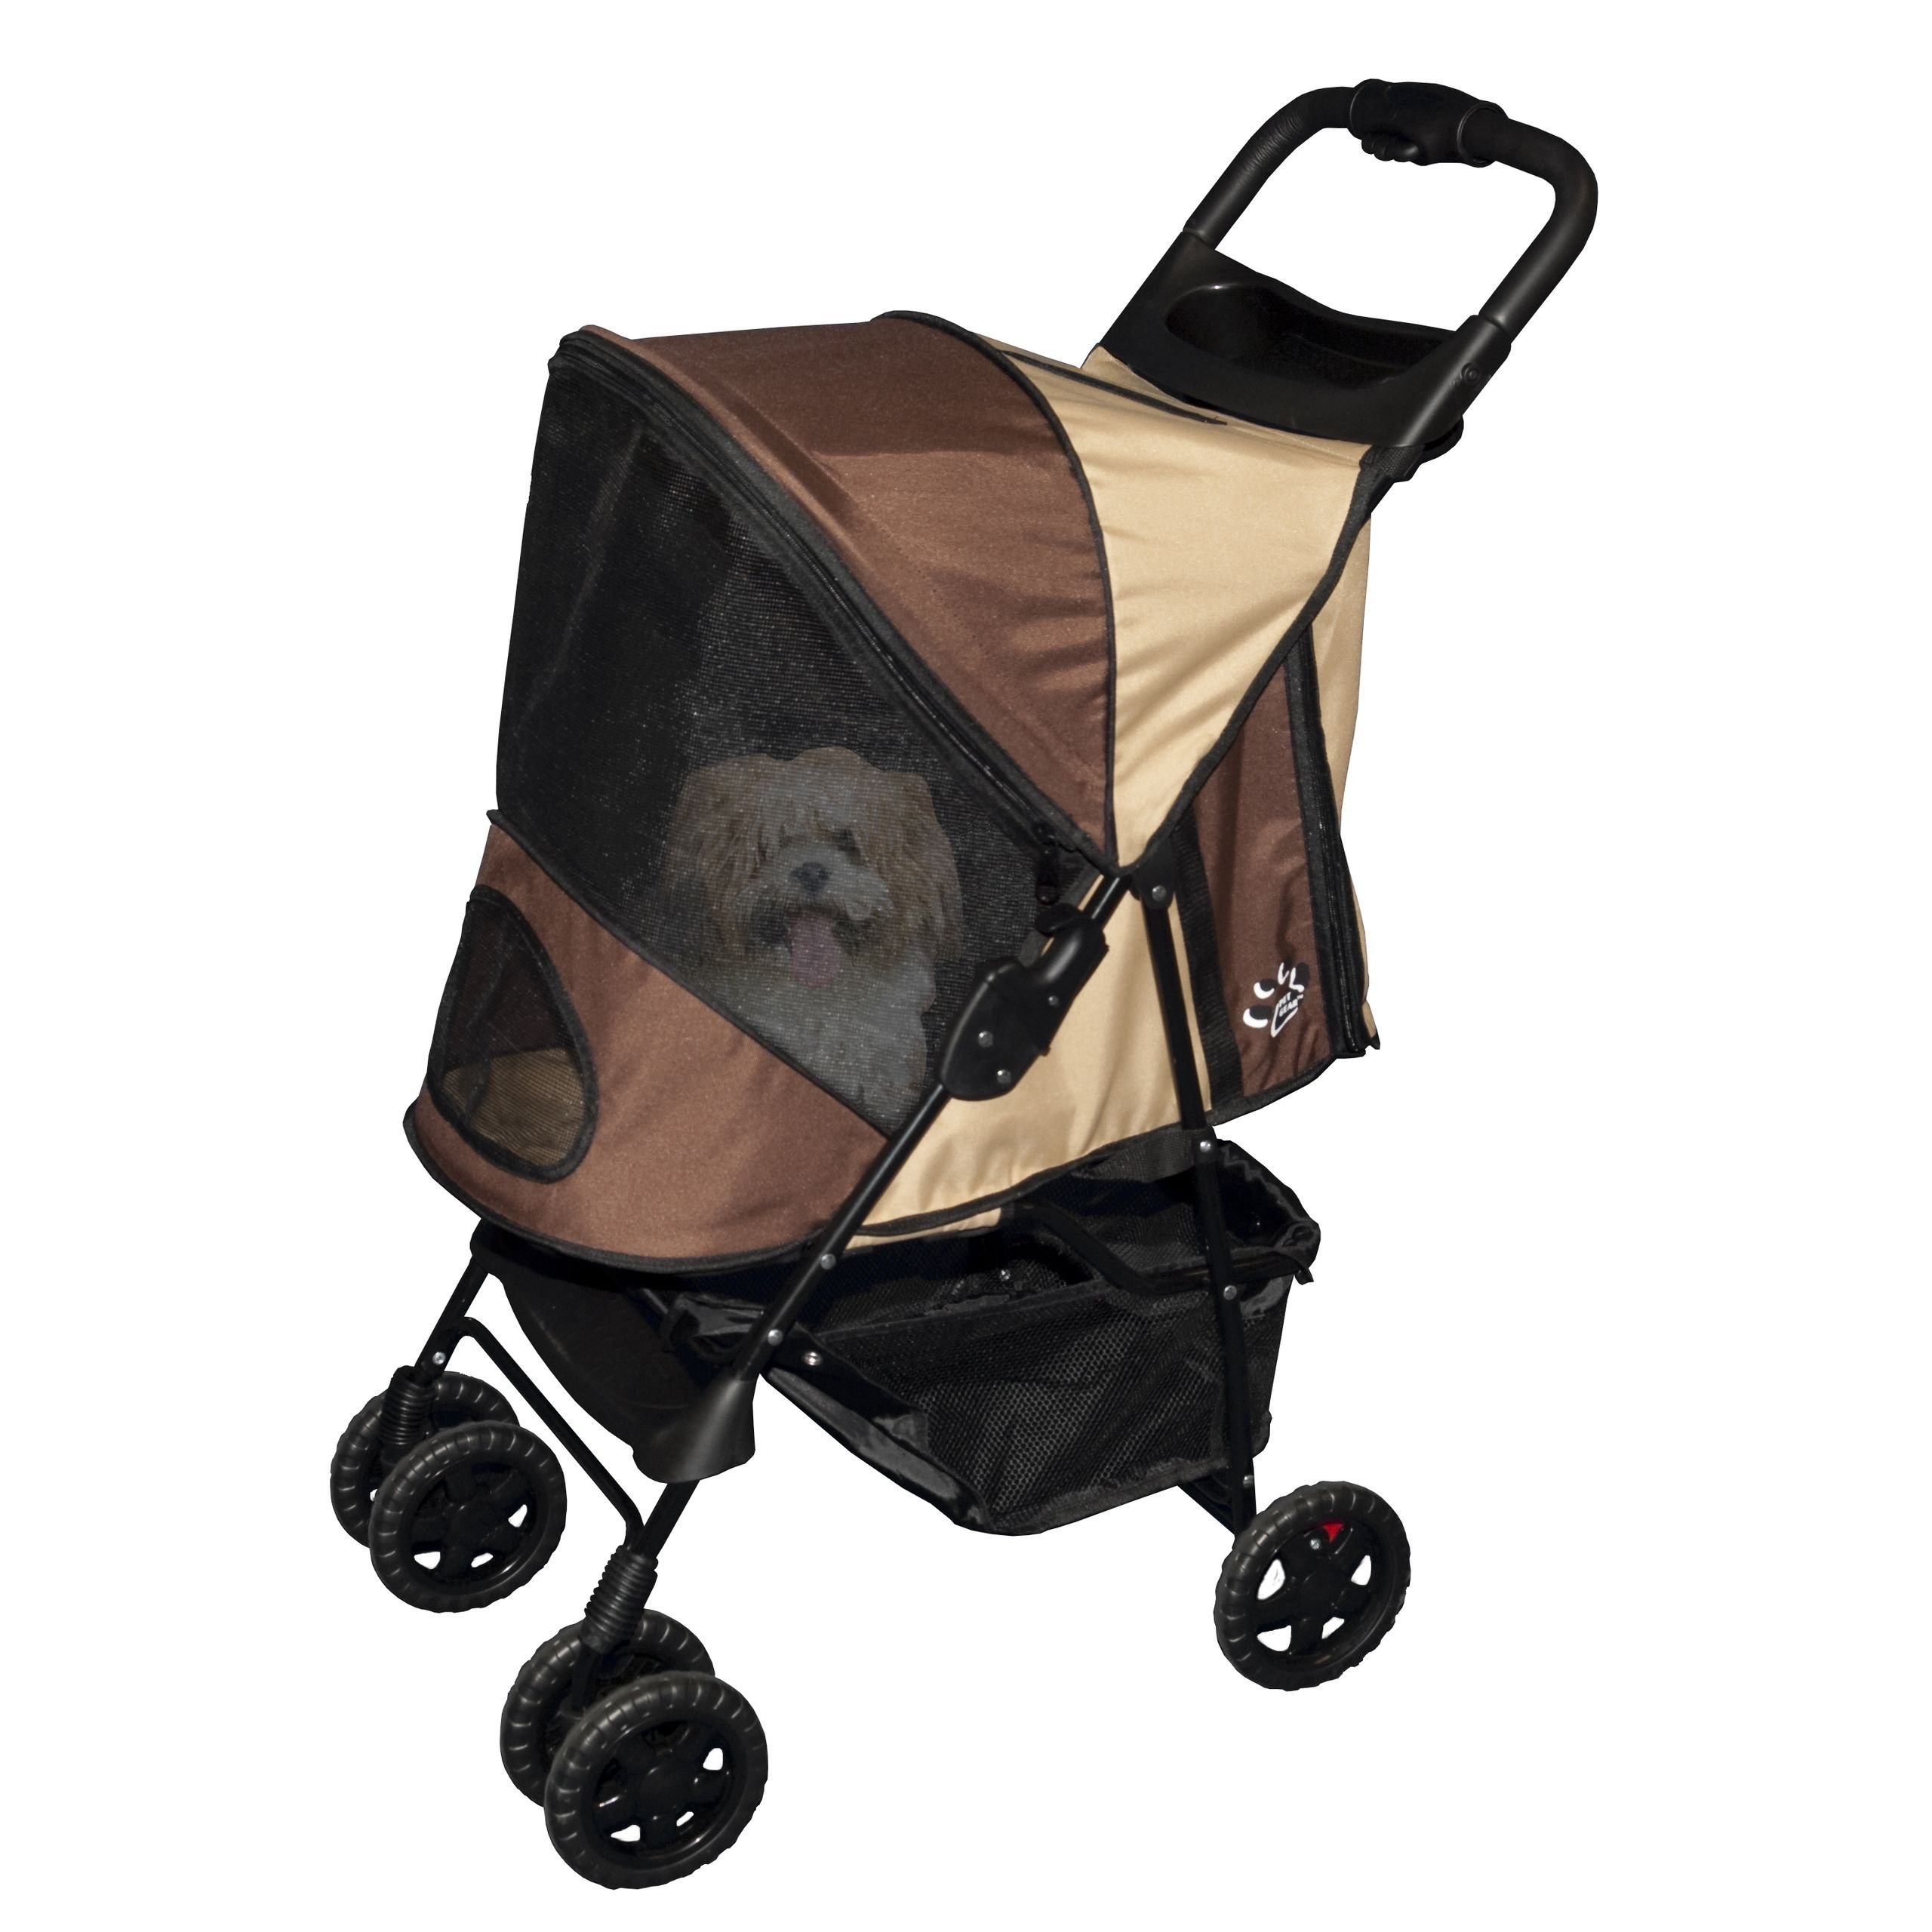 Pet Gear Happy Trails Stroller for Cats and Dogs up to 30-pounds, Sahara